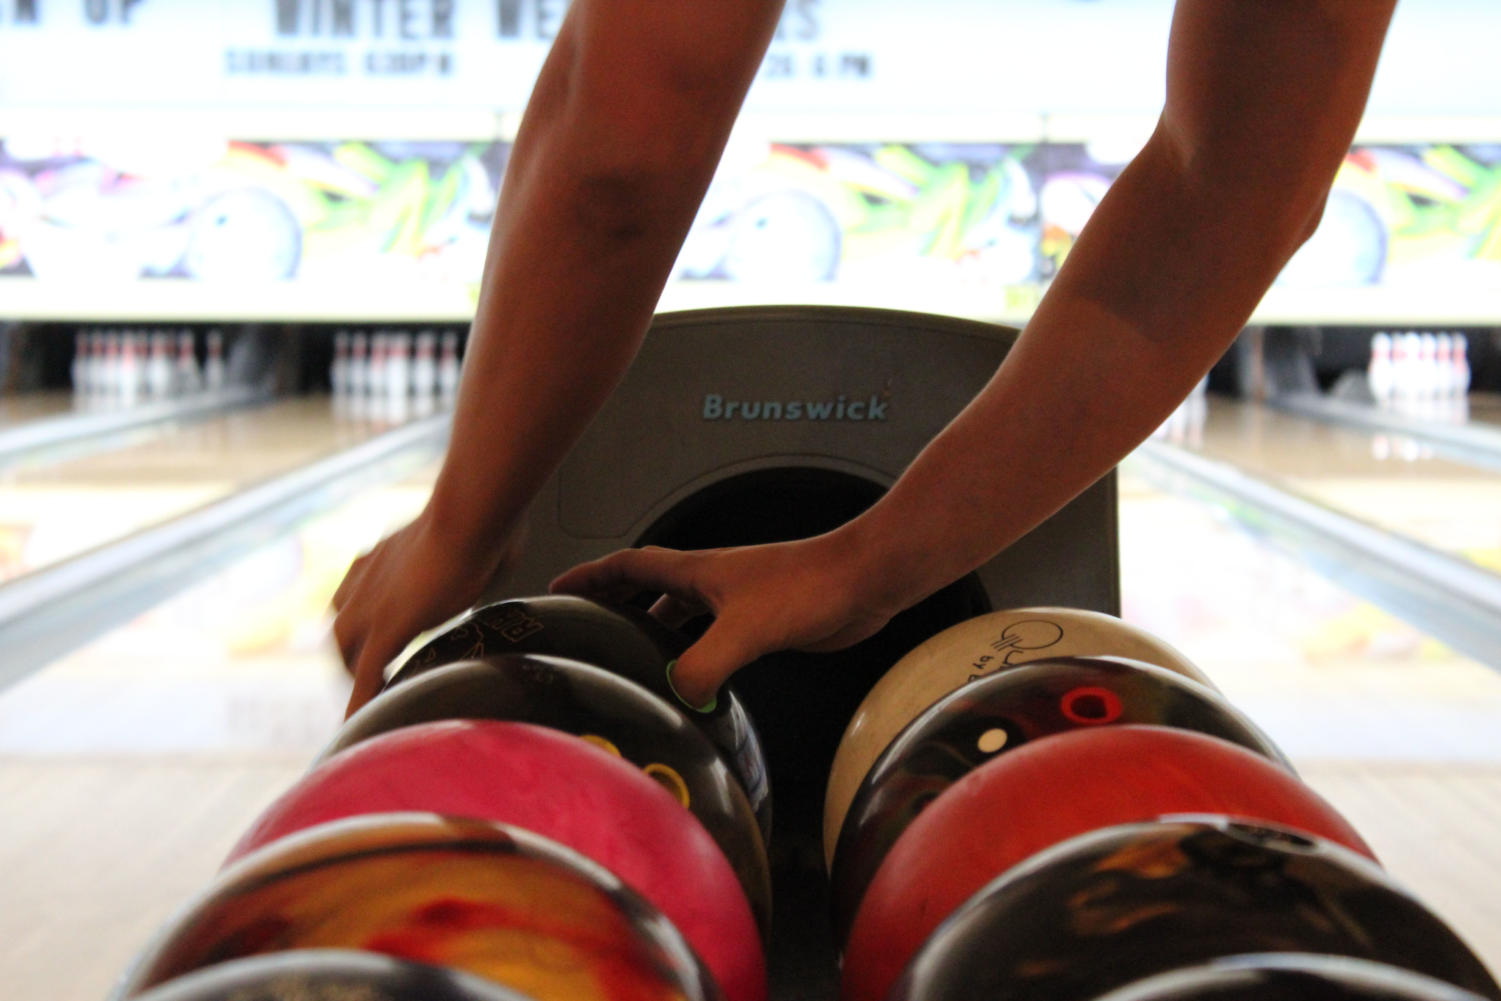 A+Brantley+bowler+reaches+for+the+ball+to+start+his+turn+on+Monday%2C+August+27+at+Oviedo+Lanes.++The+bowlers+tended+to+use+the+same+balls+for+their+turns.